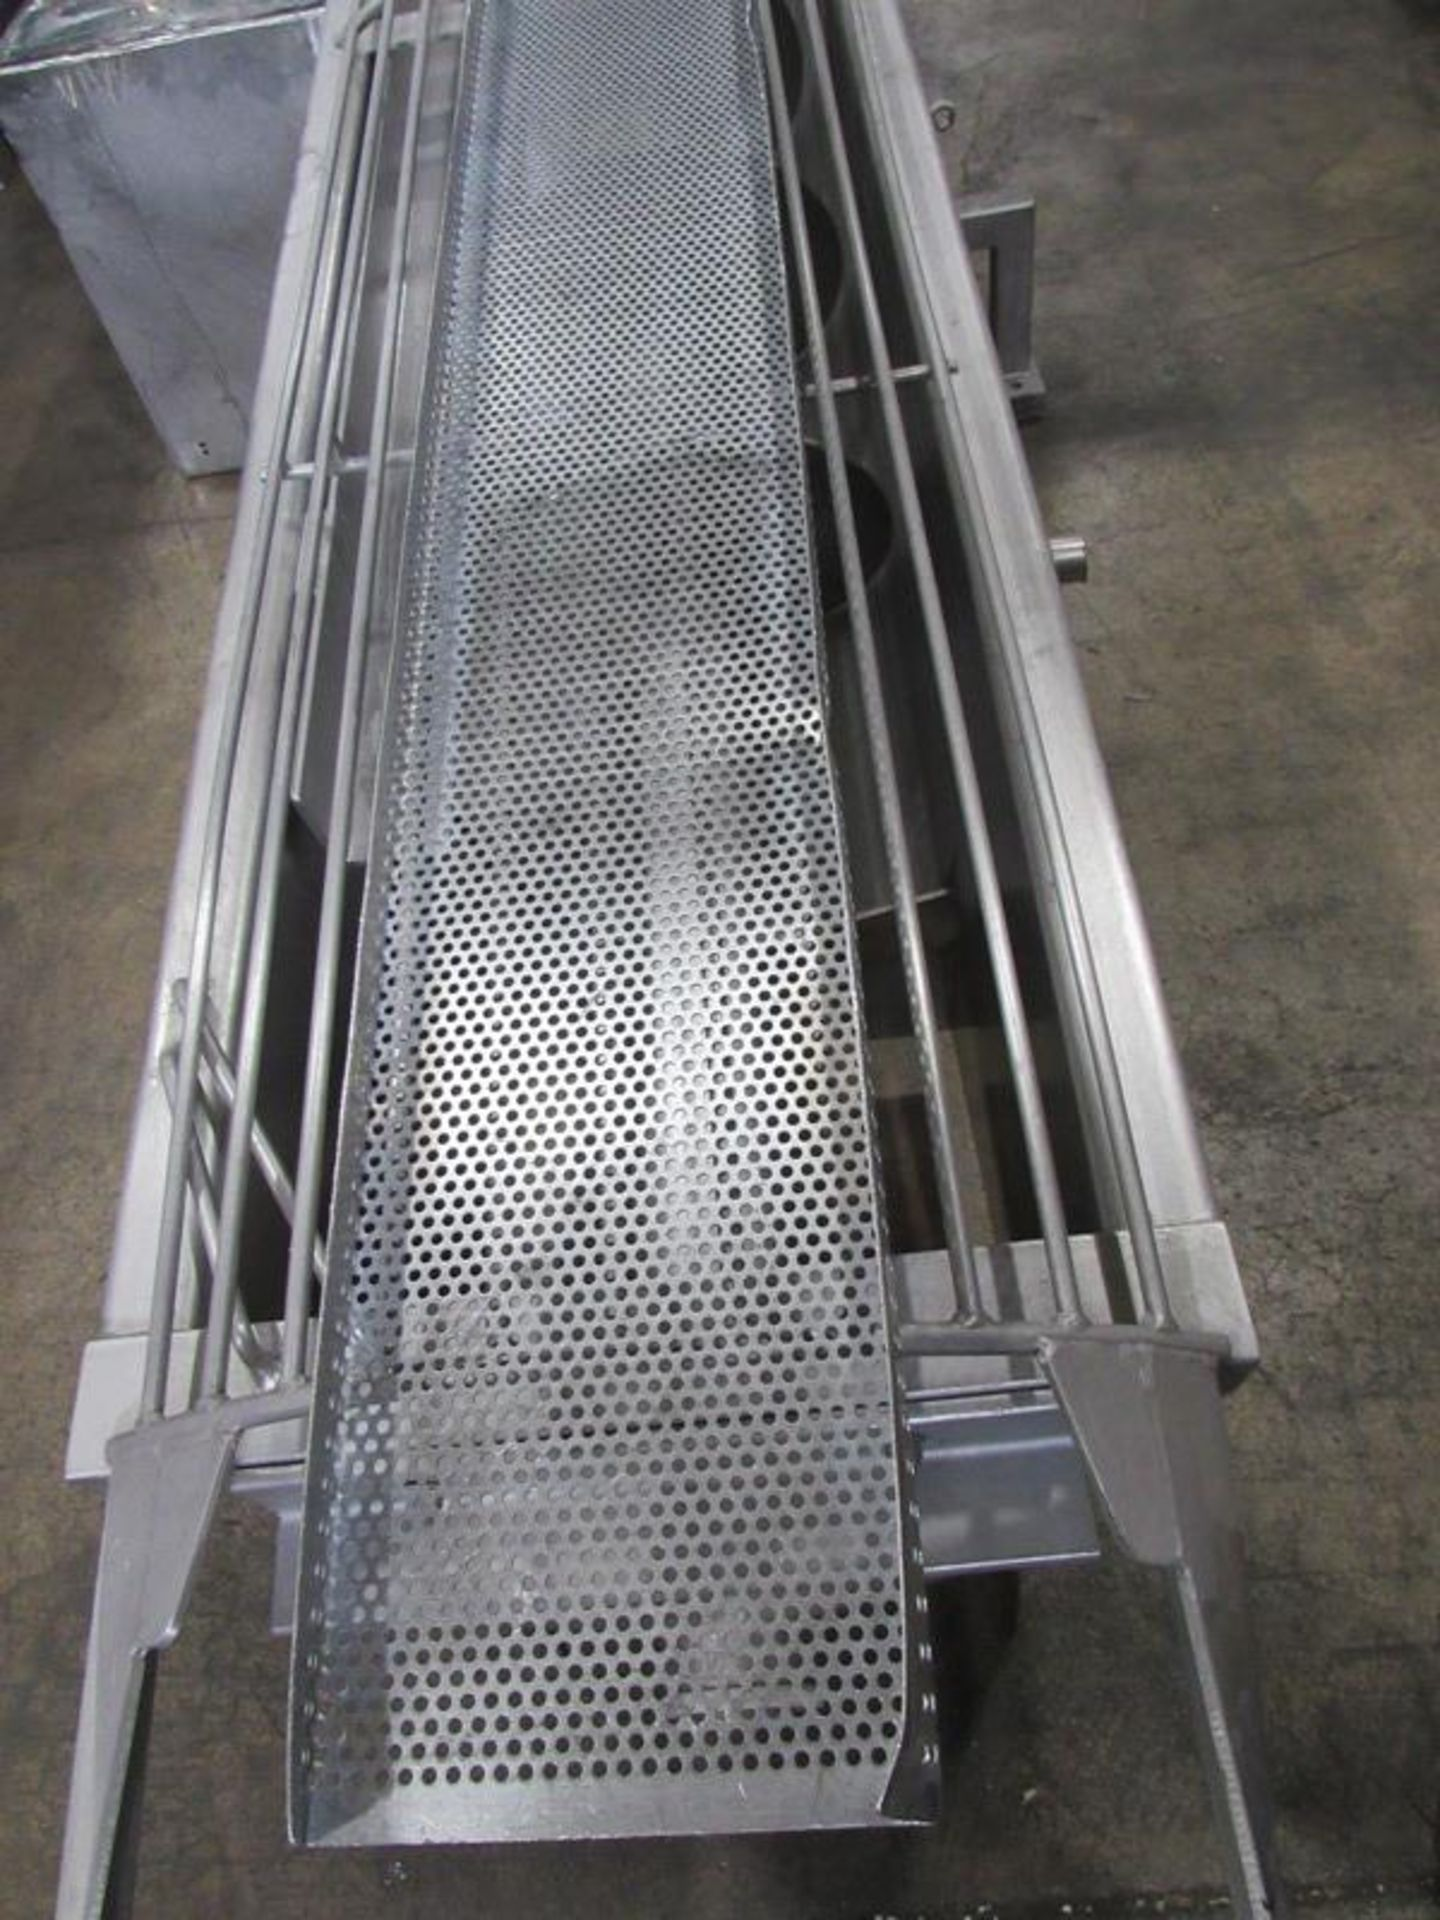 "Portable Stainless Steel Cart, 43"" W X 52"" L X 5' T, 34 removable perforated trays, 8"" W X 48"" L ( - Image 3 of 3"